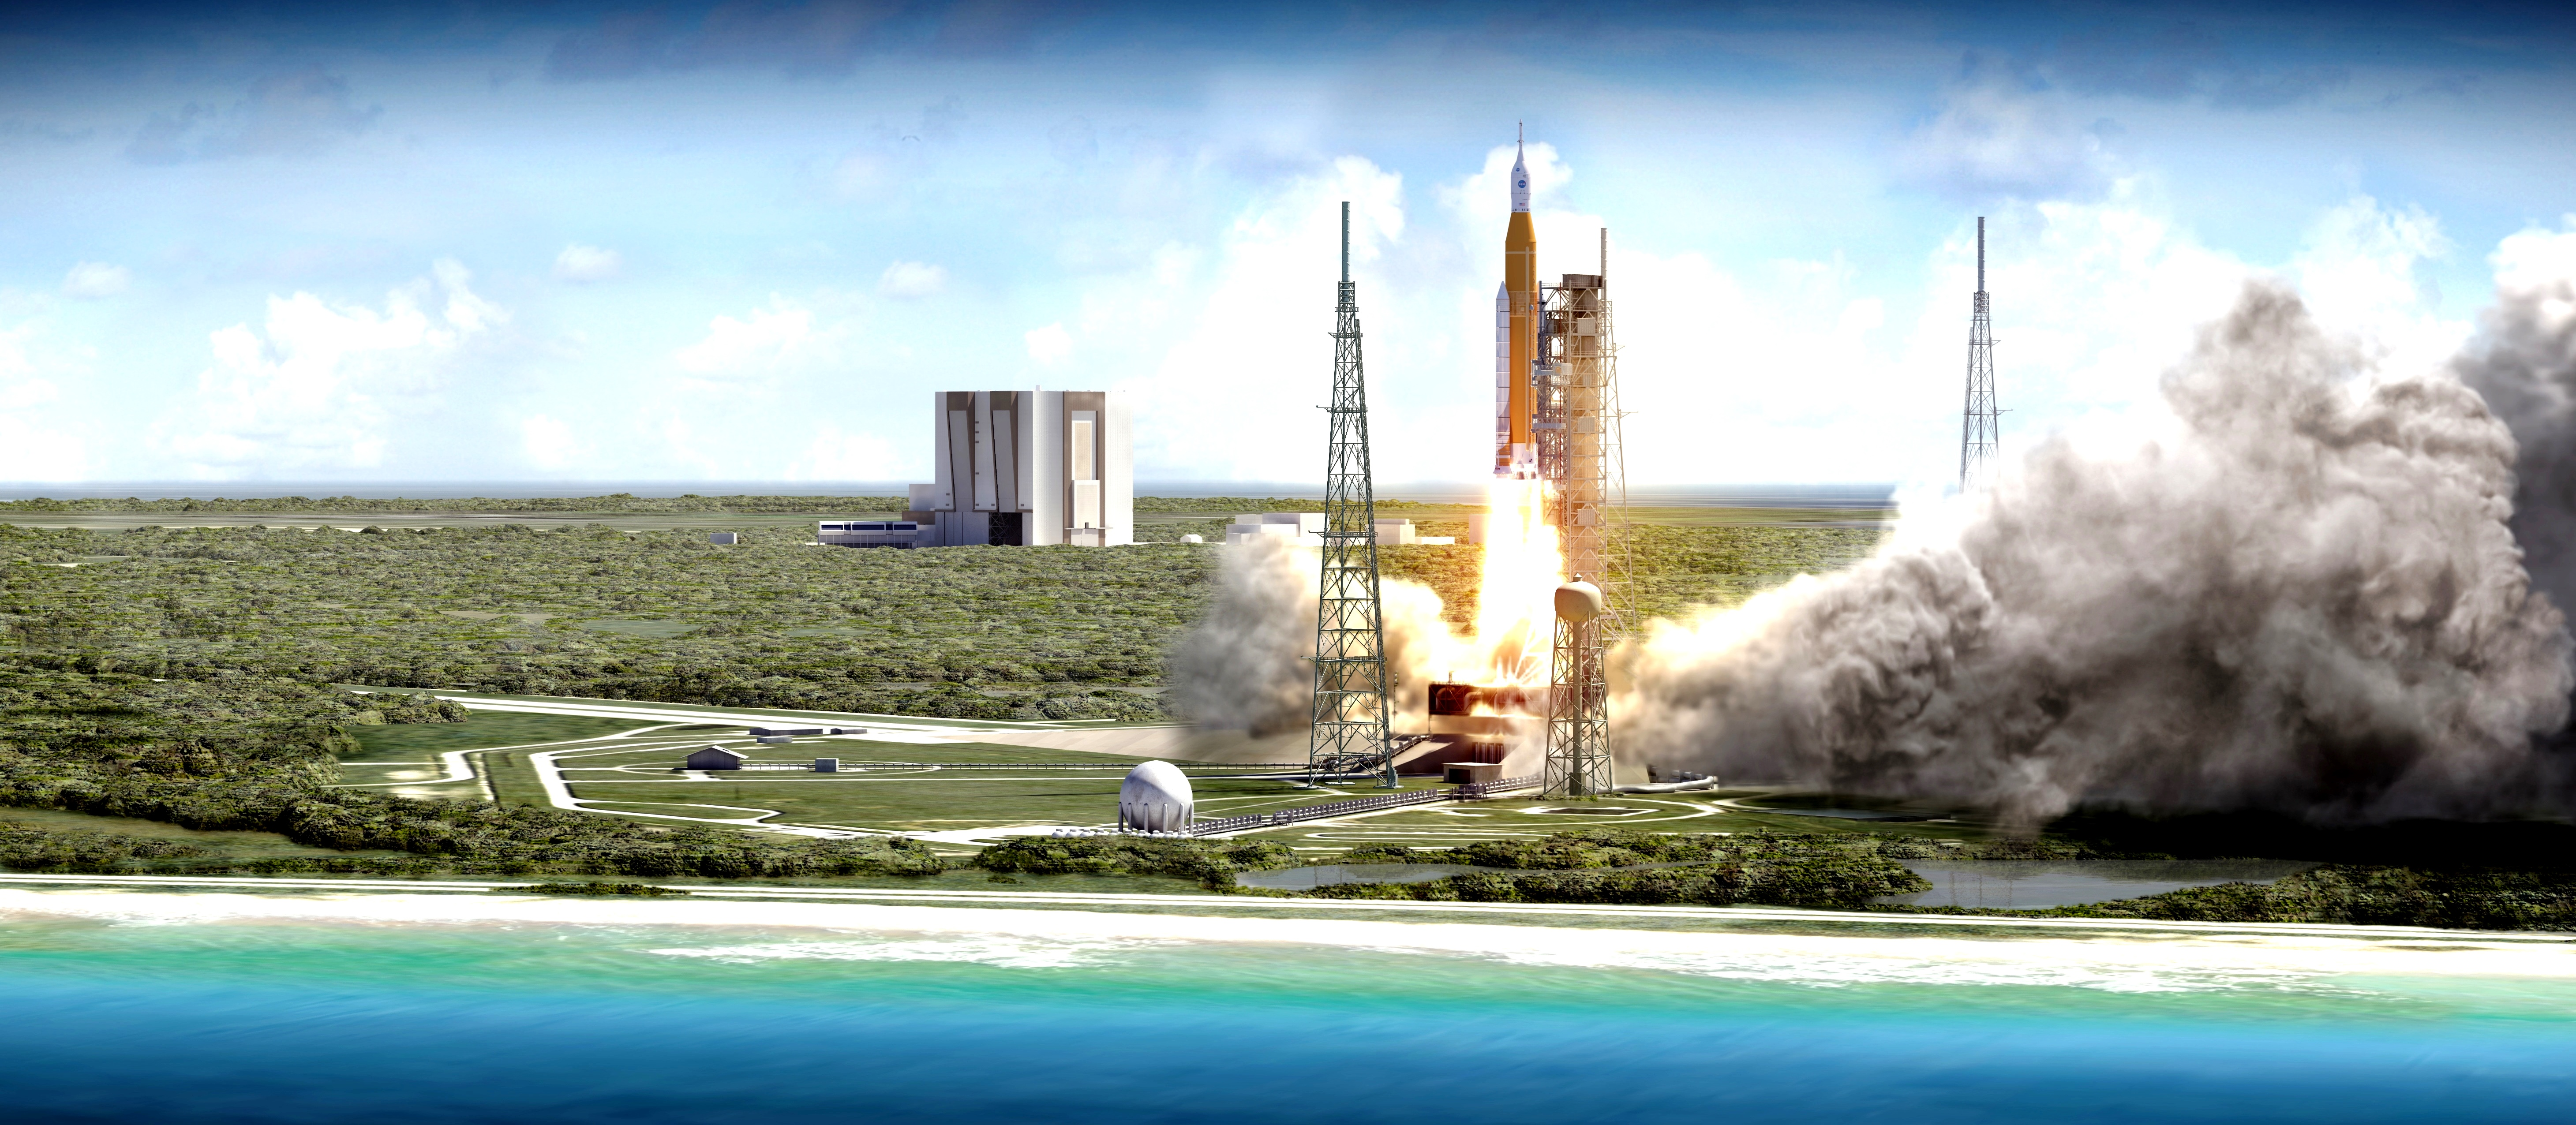 New Tracking Stations to Provide Latest Technology for SLS ...